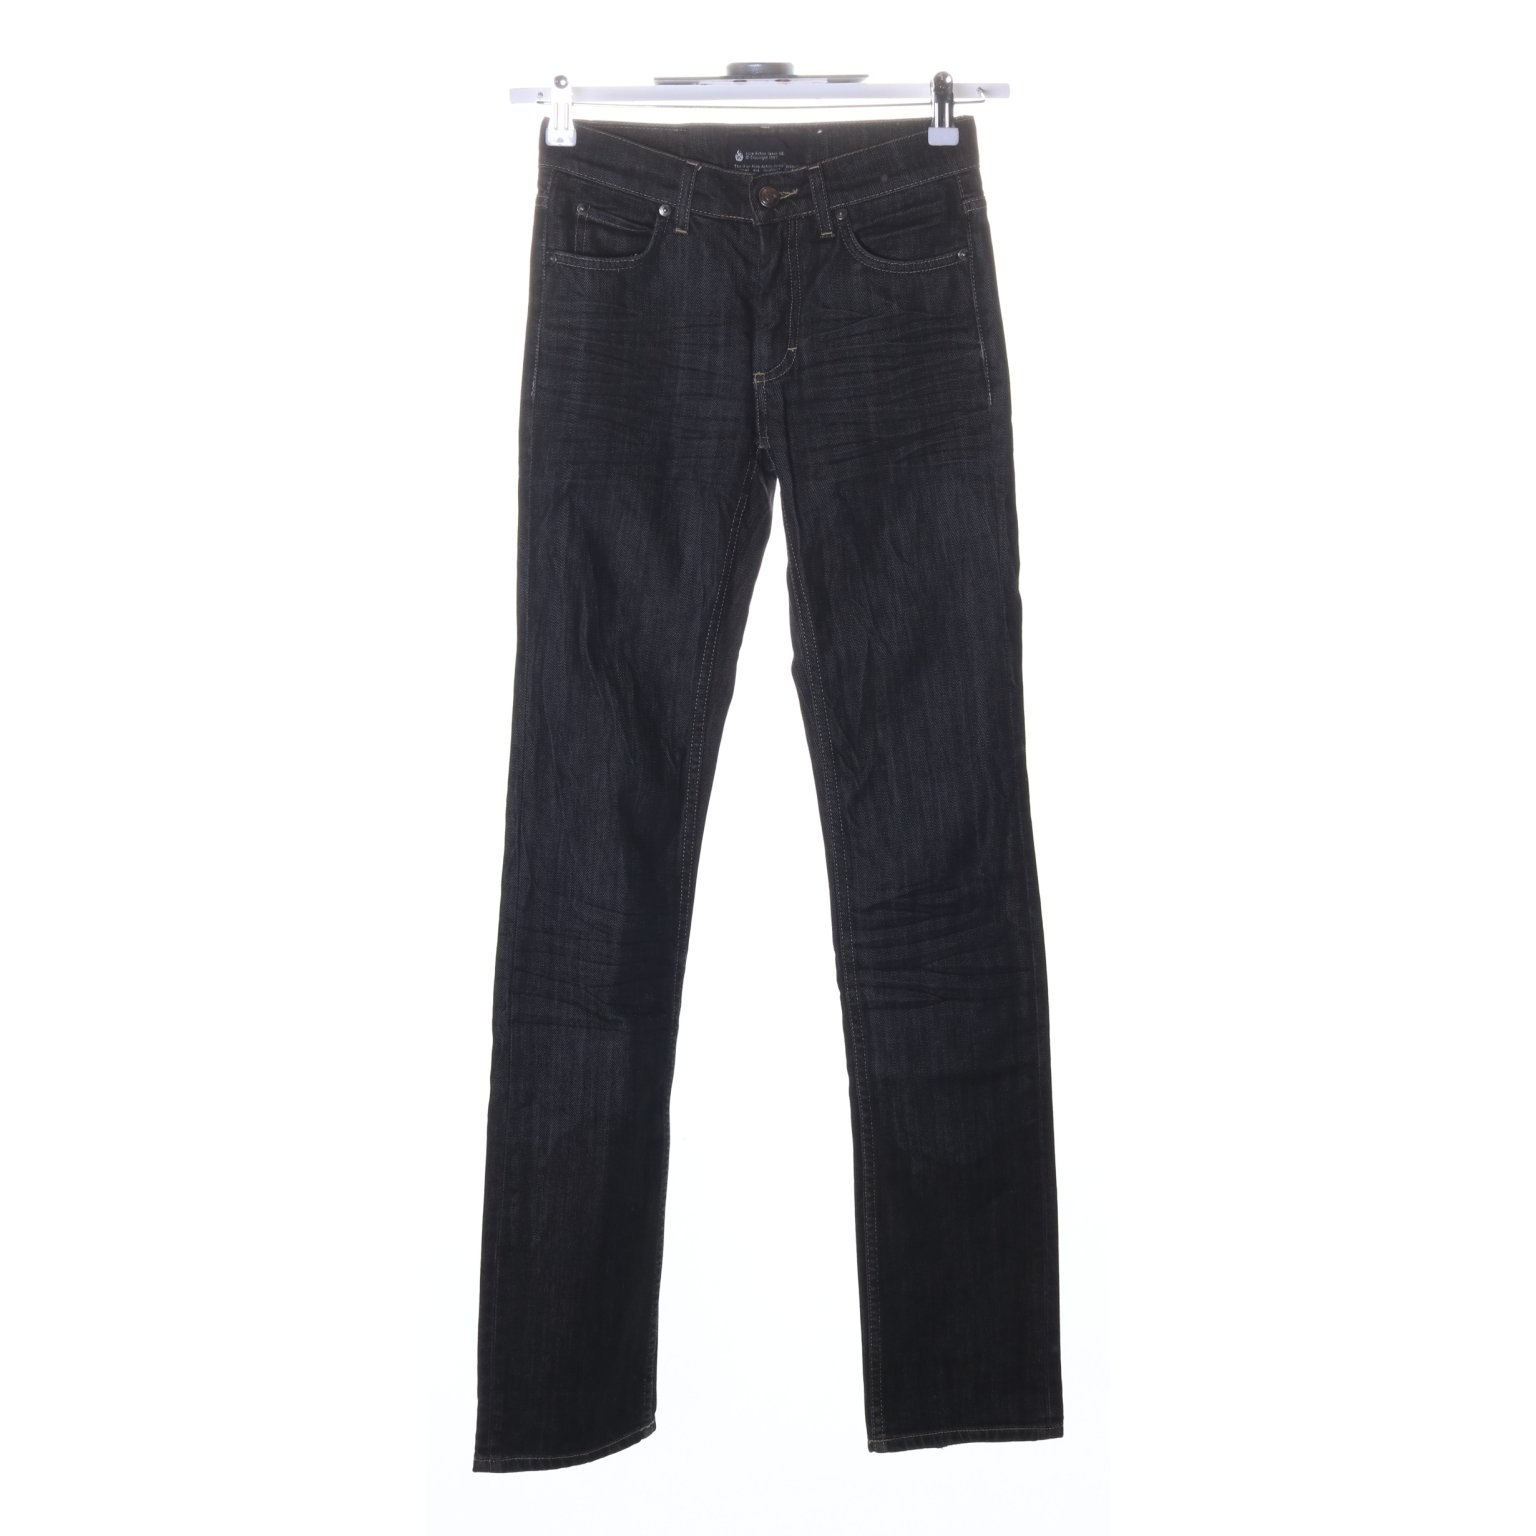 Acne Action Jeans, Jeans, Strl: 26/32, Dacpa 0001, Svart, Bomull